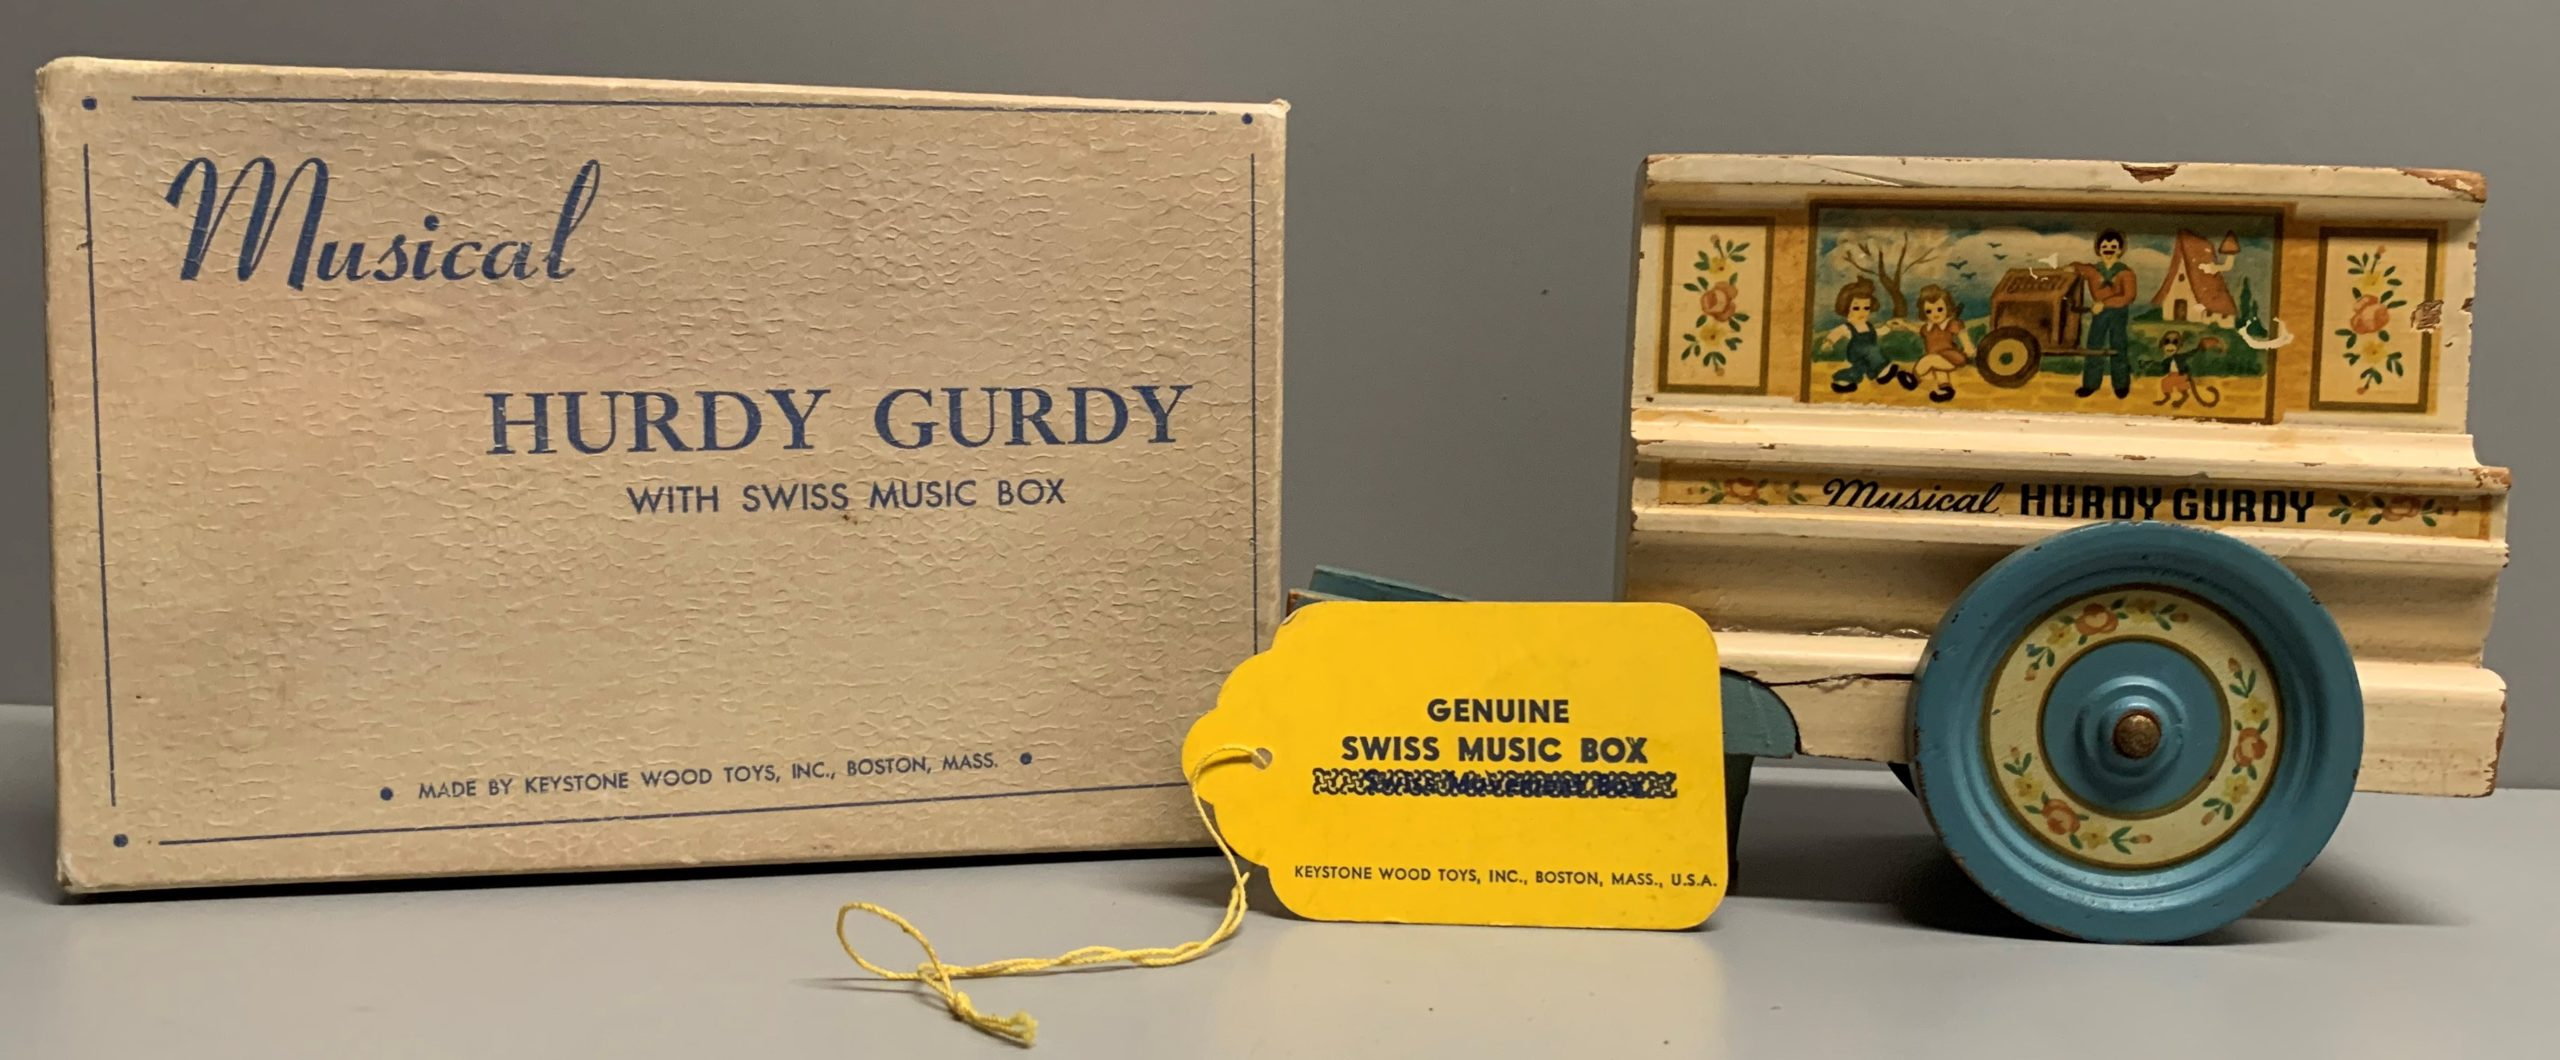 Hurdy Gurdy with Sales Sample Tag